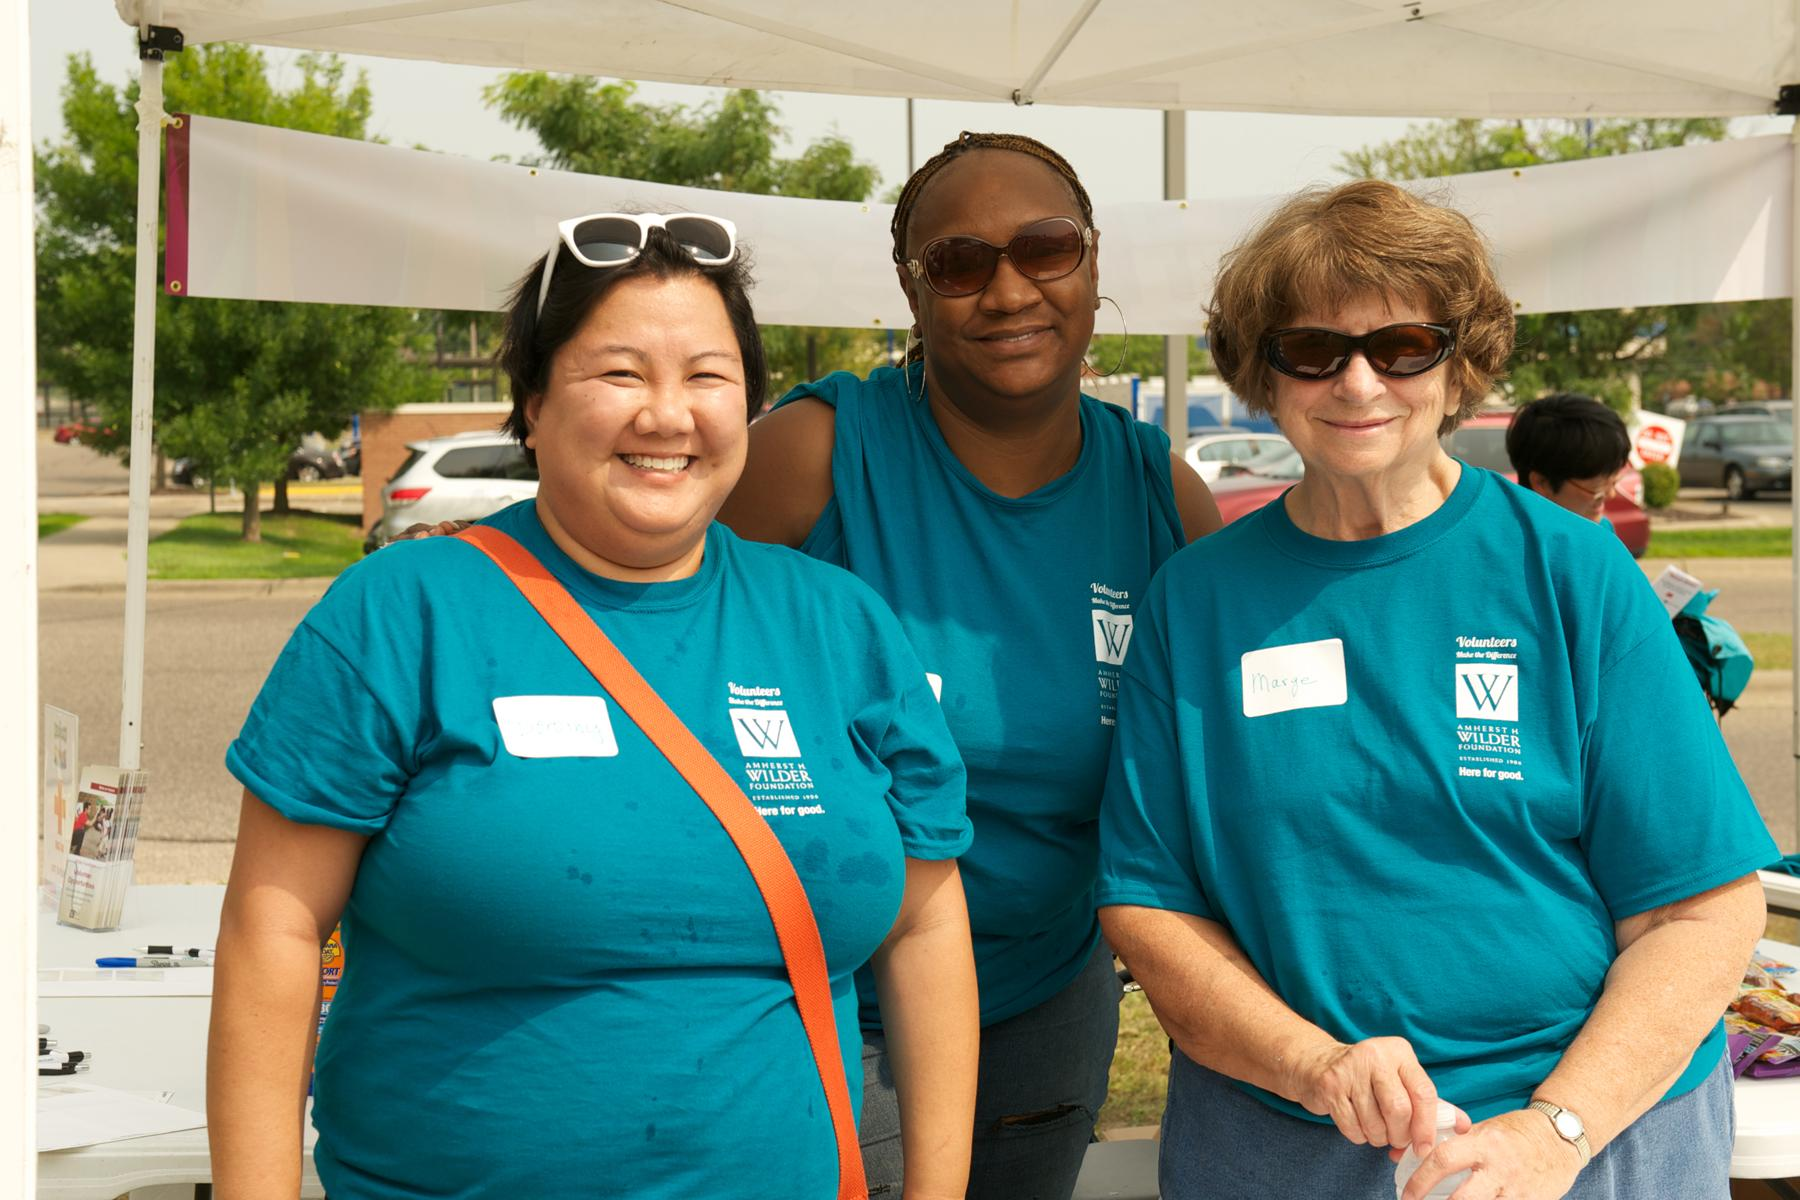 Wilder Block party volunteers in Saint Paul, MN